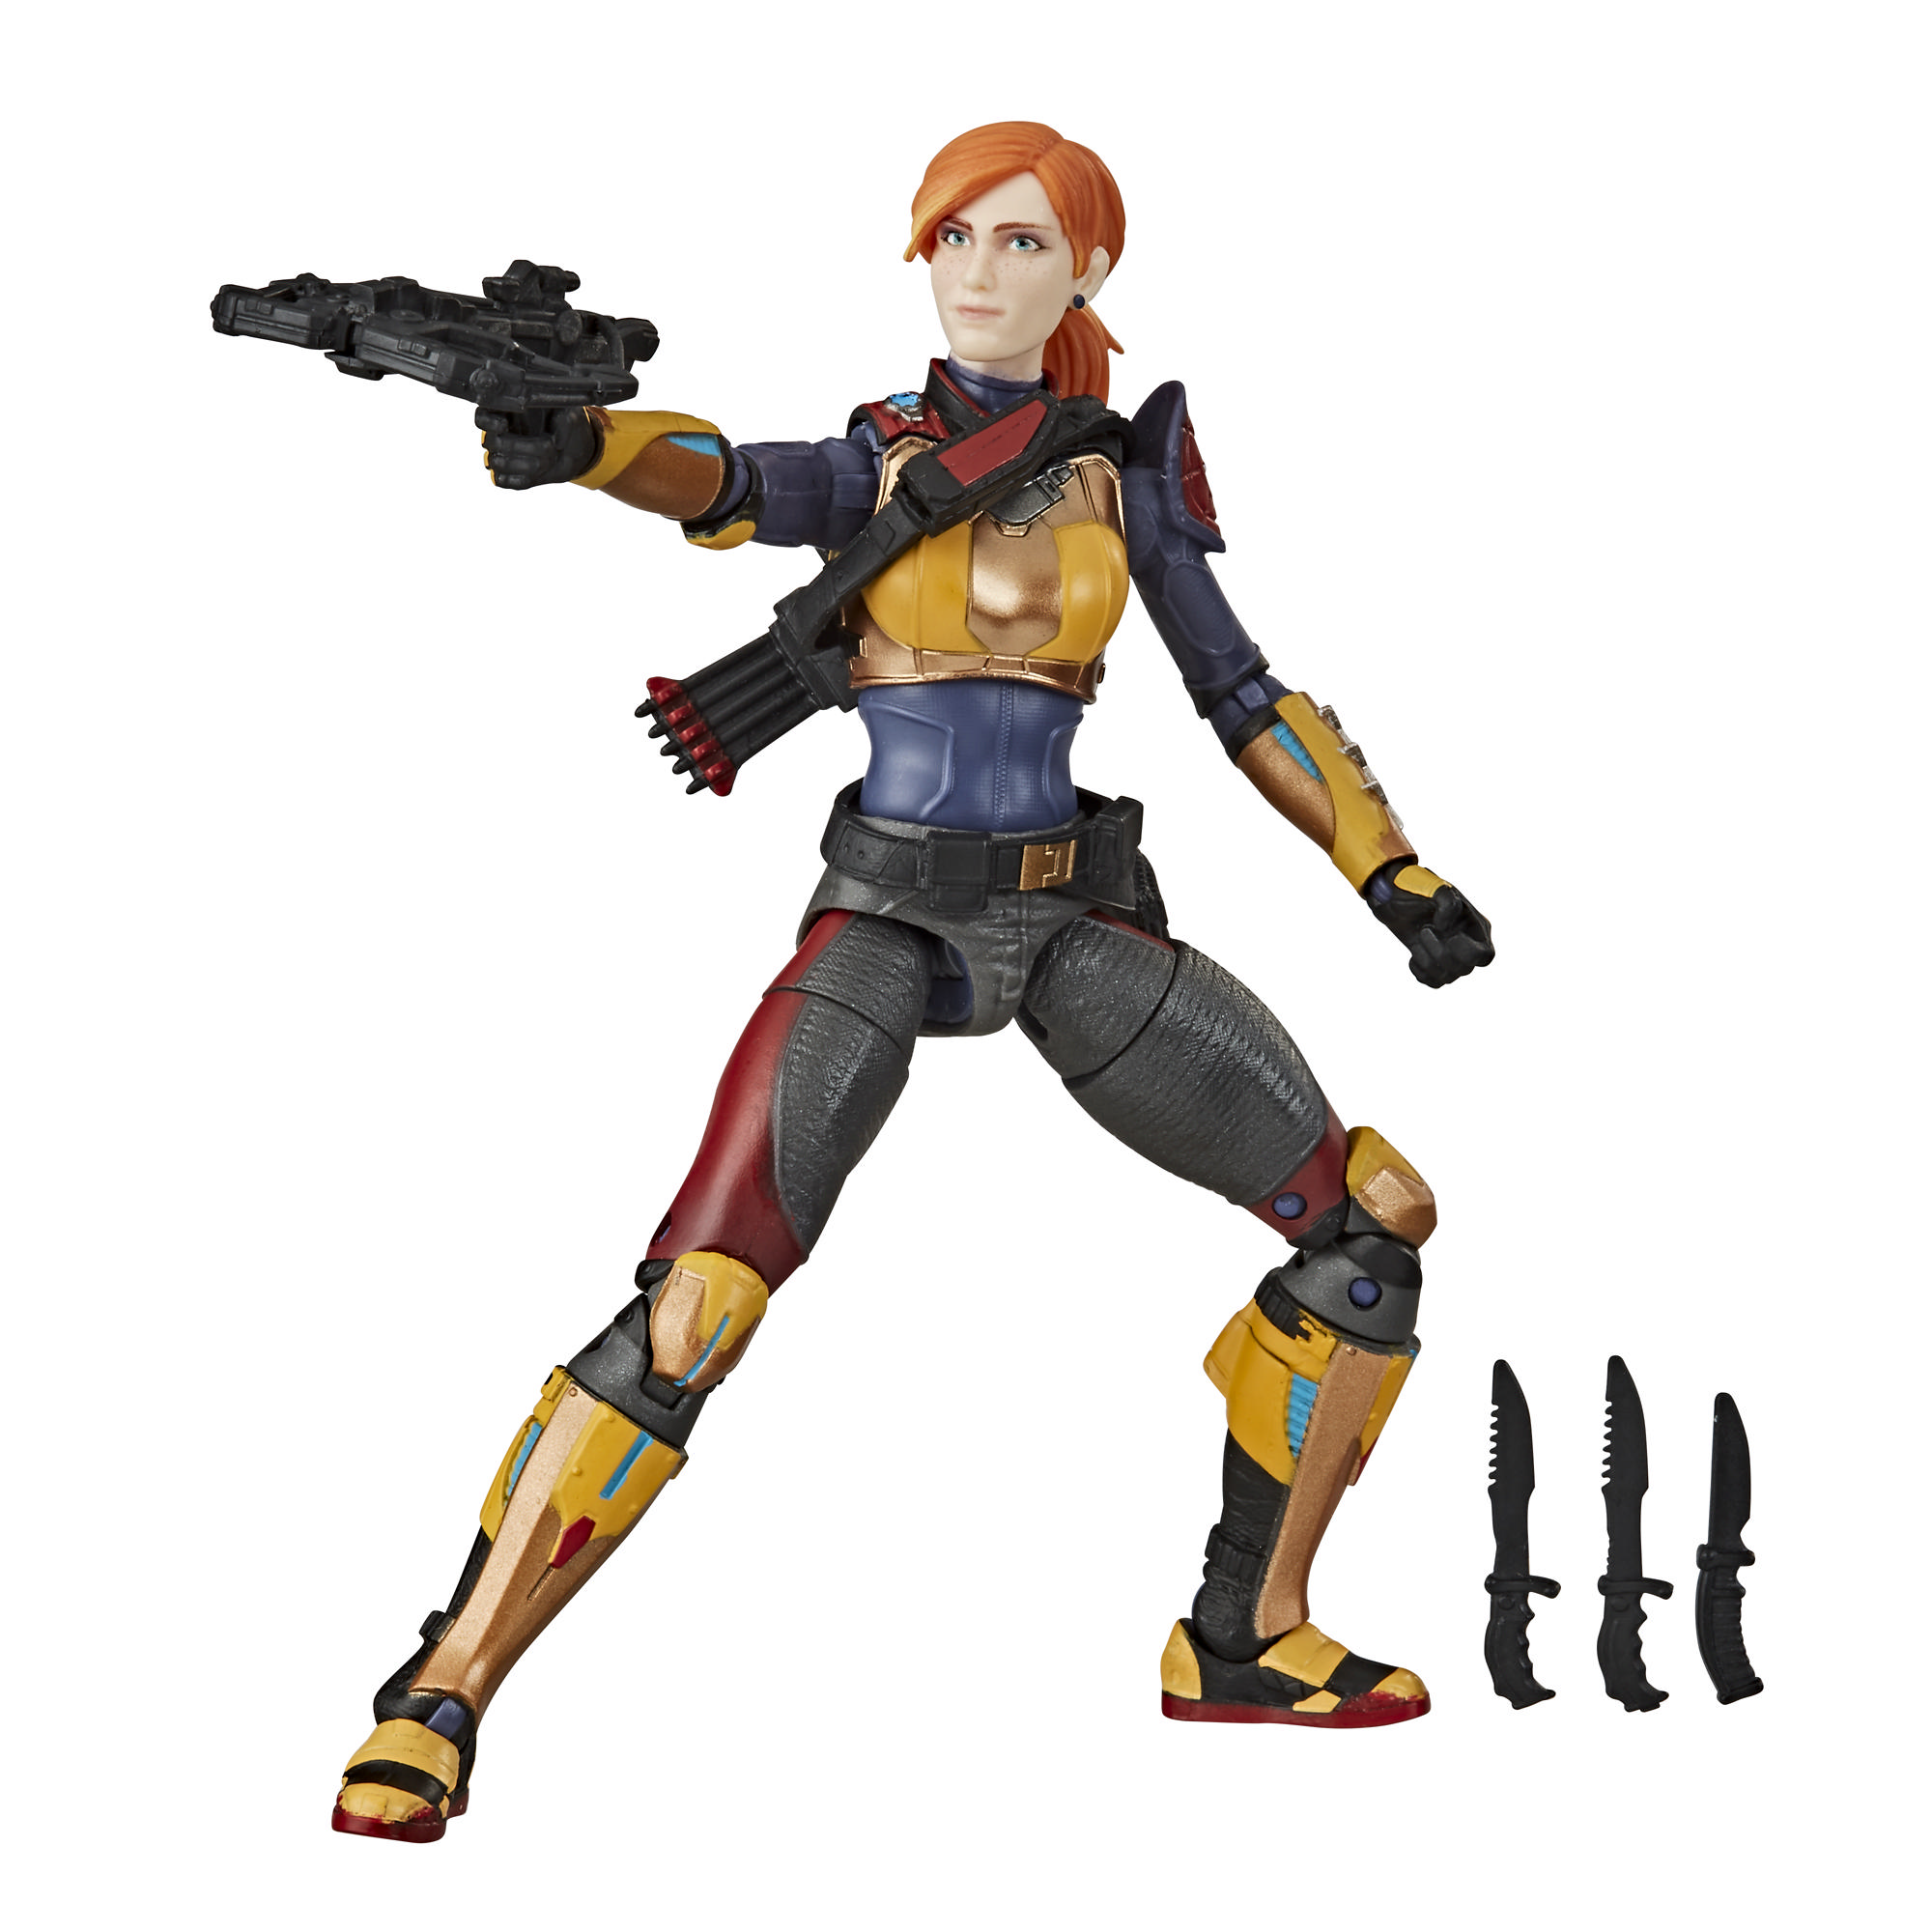 G.I. Joe Classified Series, figurine Scarlett 05 premium à collectionner de 15 cm, accessoires multiples